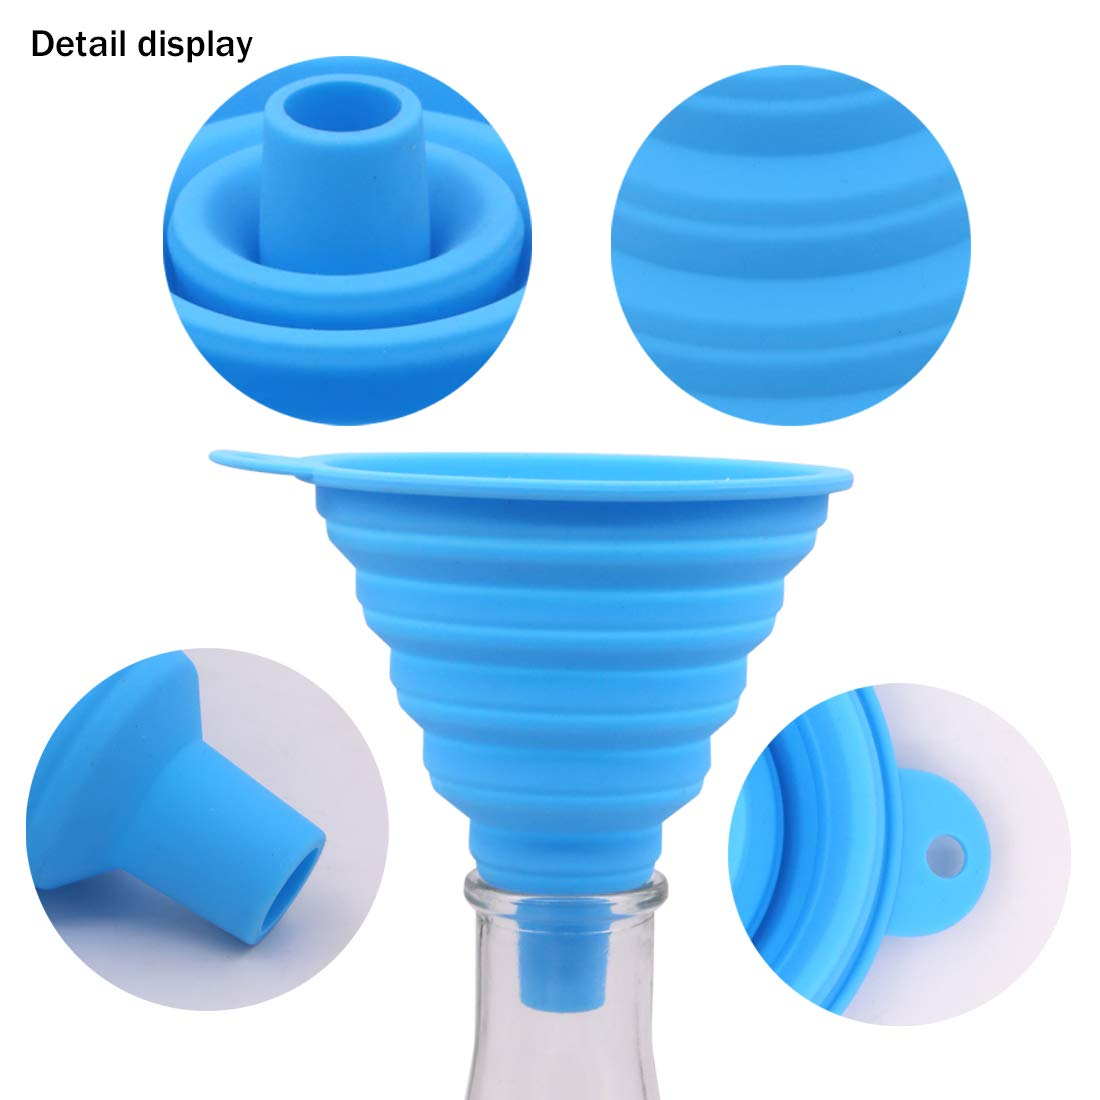 Wandou 200pcs Paint Strainer Filter 100 Mesh Disposable Nylon Conical Paper Purifying Cup Paint Paper Strainers with 1 Pcs Silicone Folding Funnel